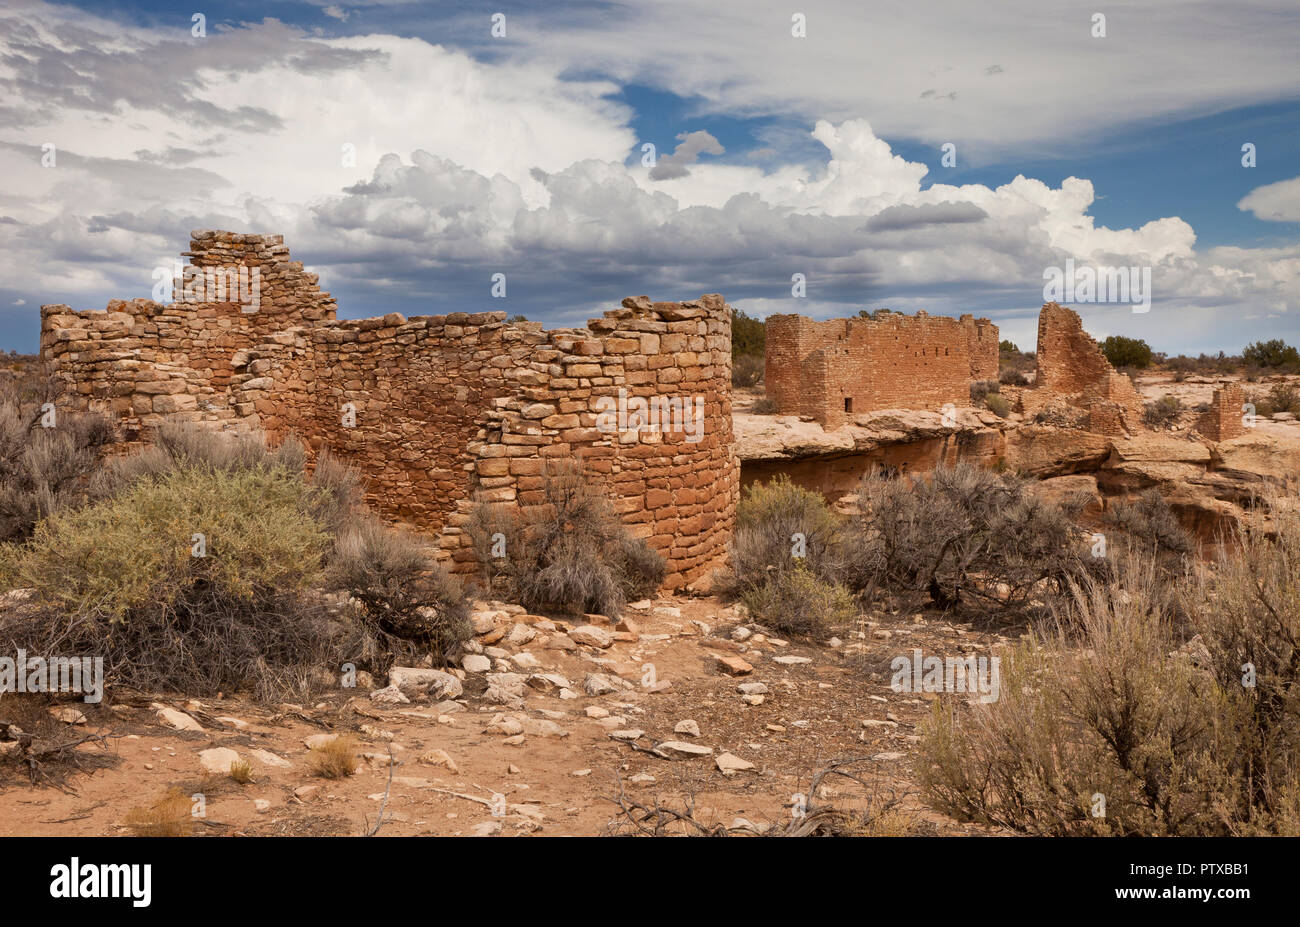 The ruins at Hovenweep National Monument, Utah, USA - Stock Image